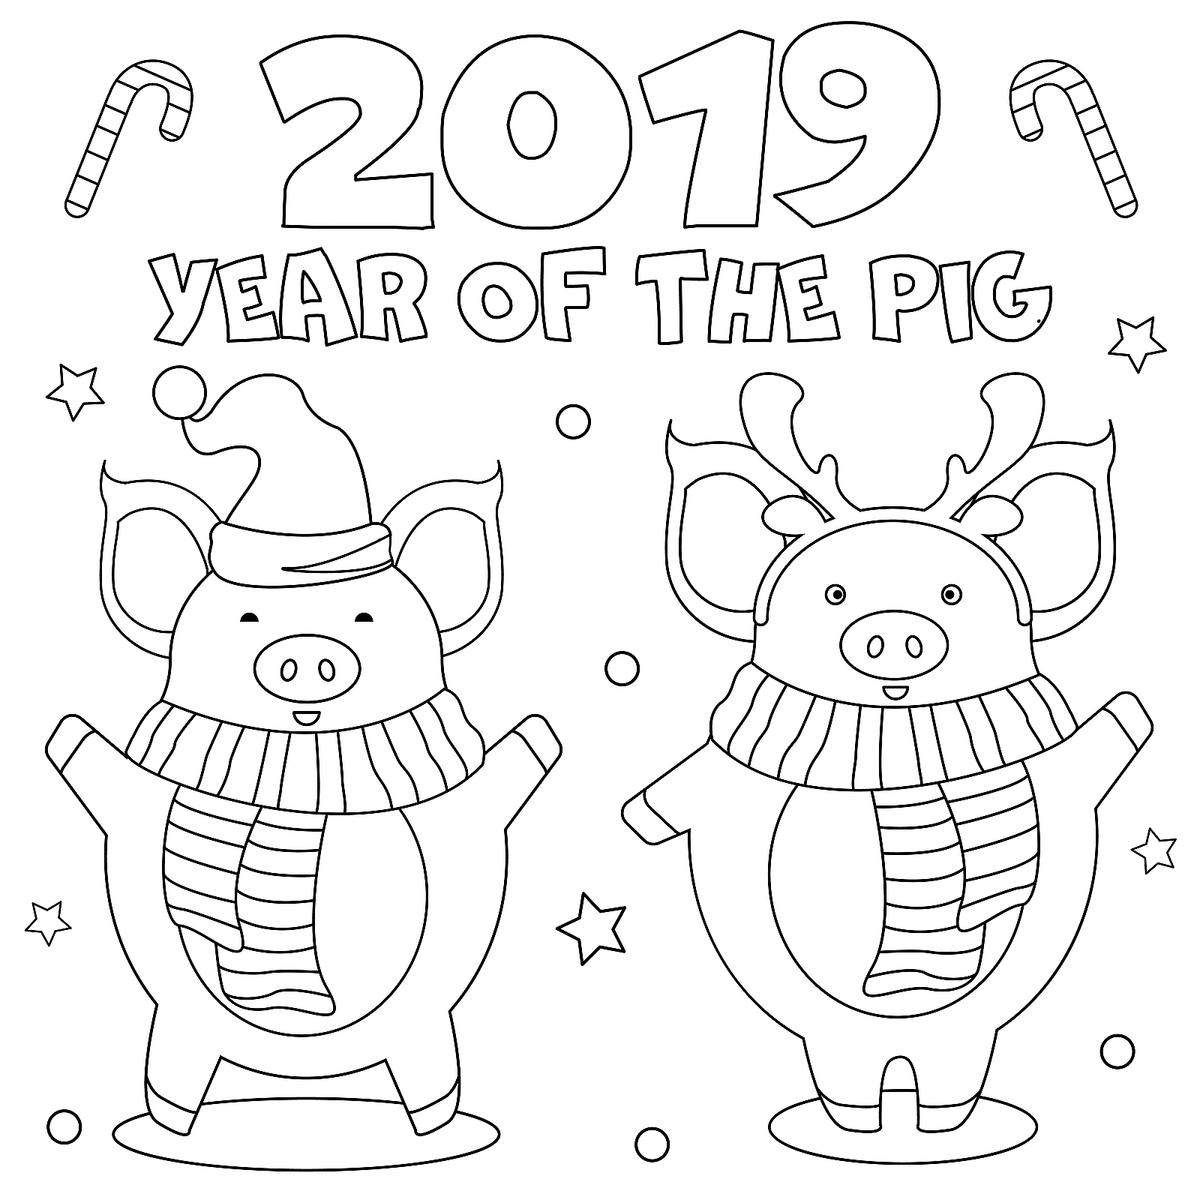 Coloring Pages For Kids To Print Out New Year January Coloring Pages Printable Fun To Help Kids